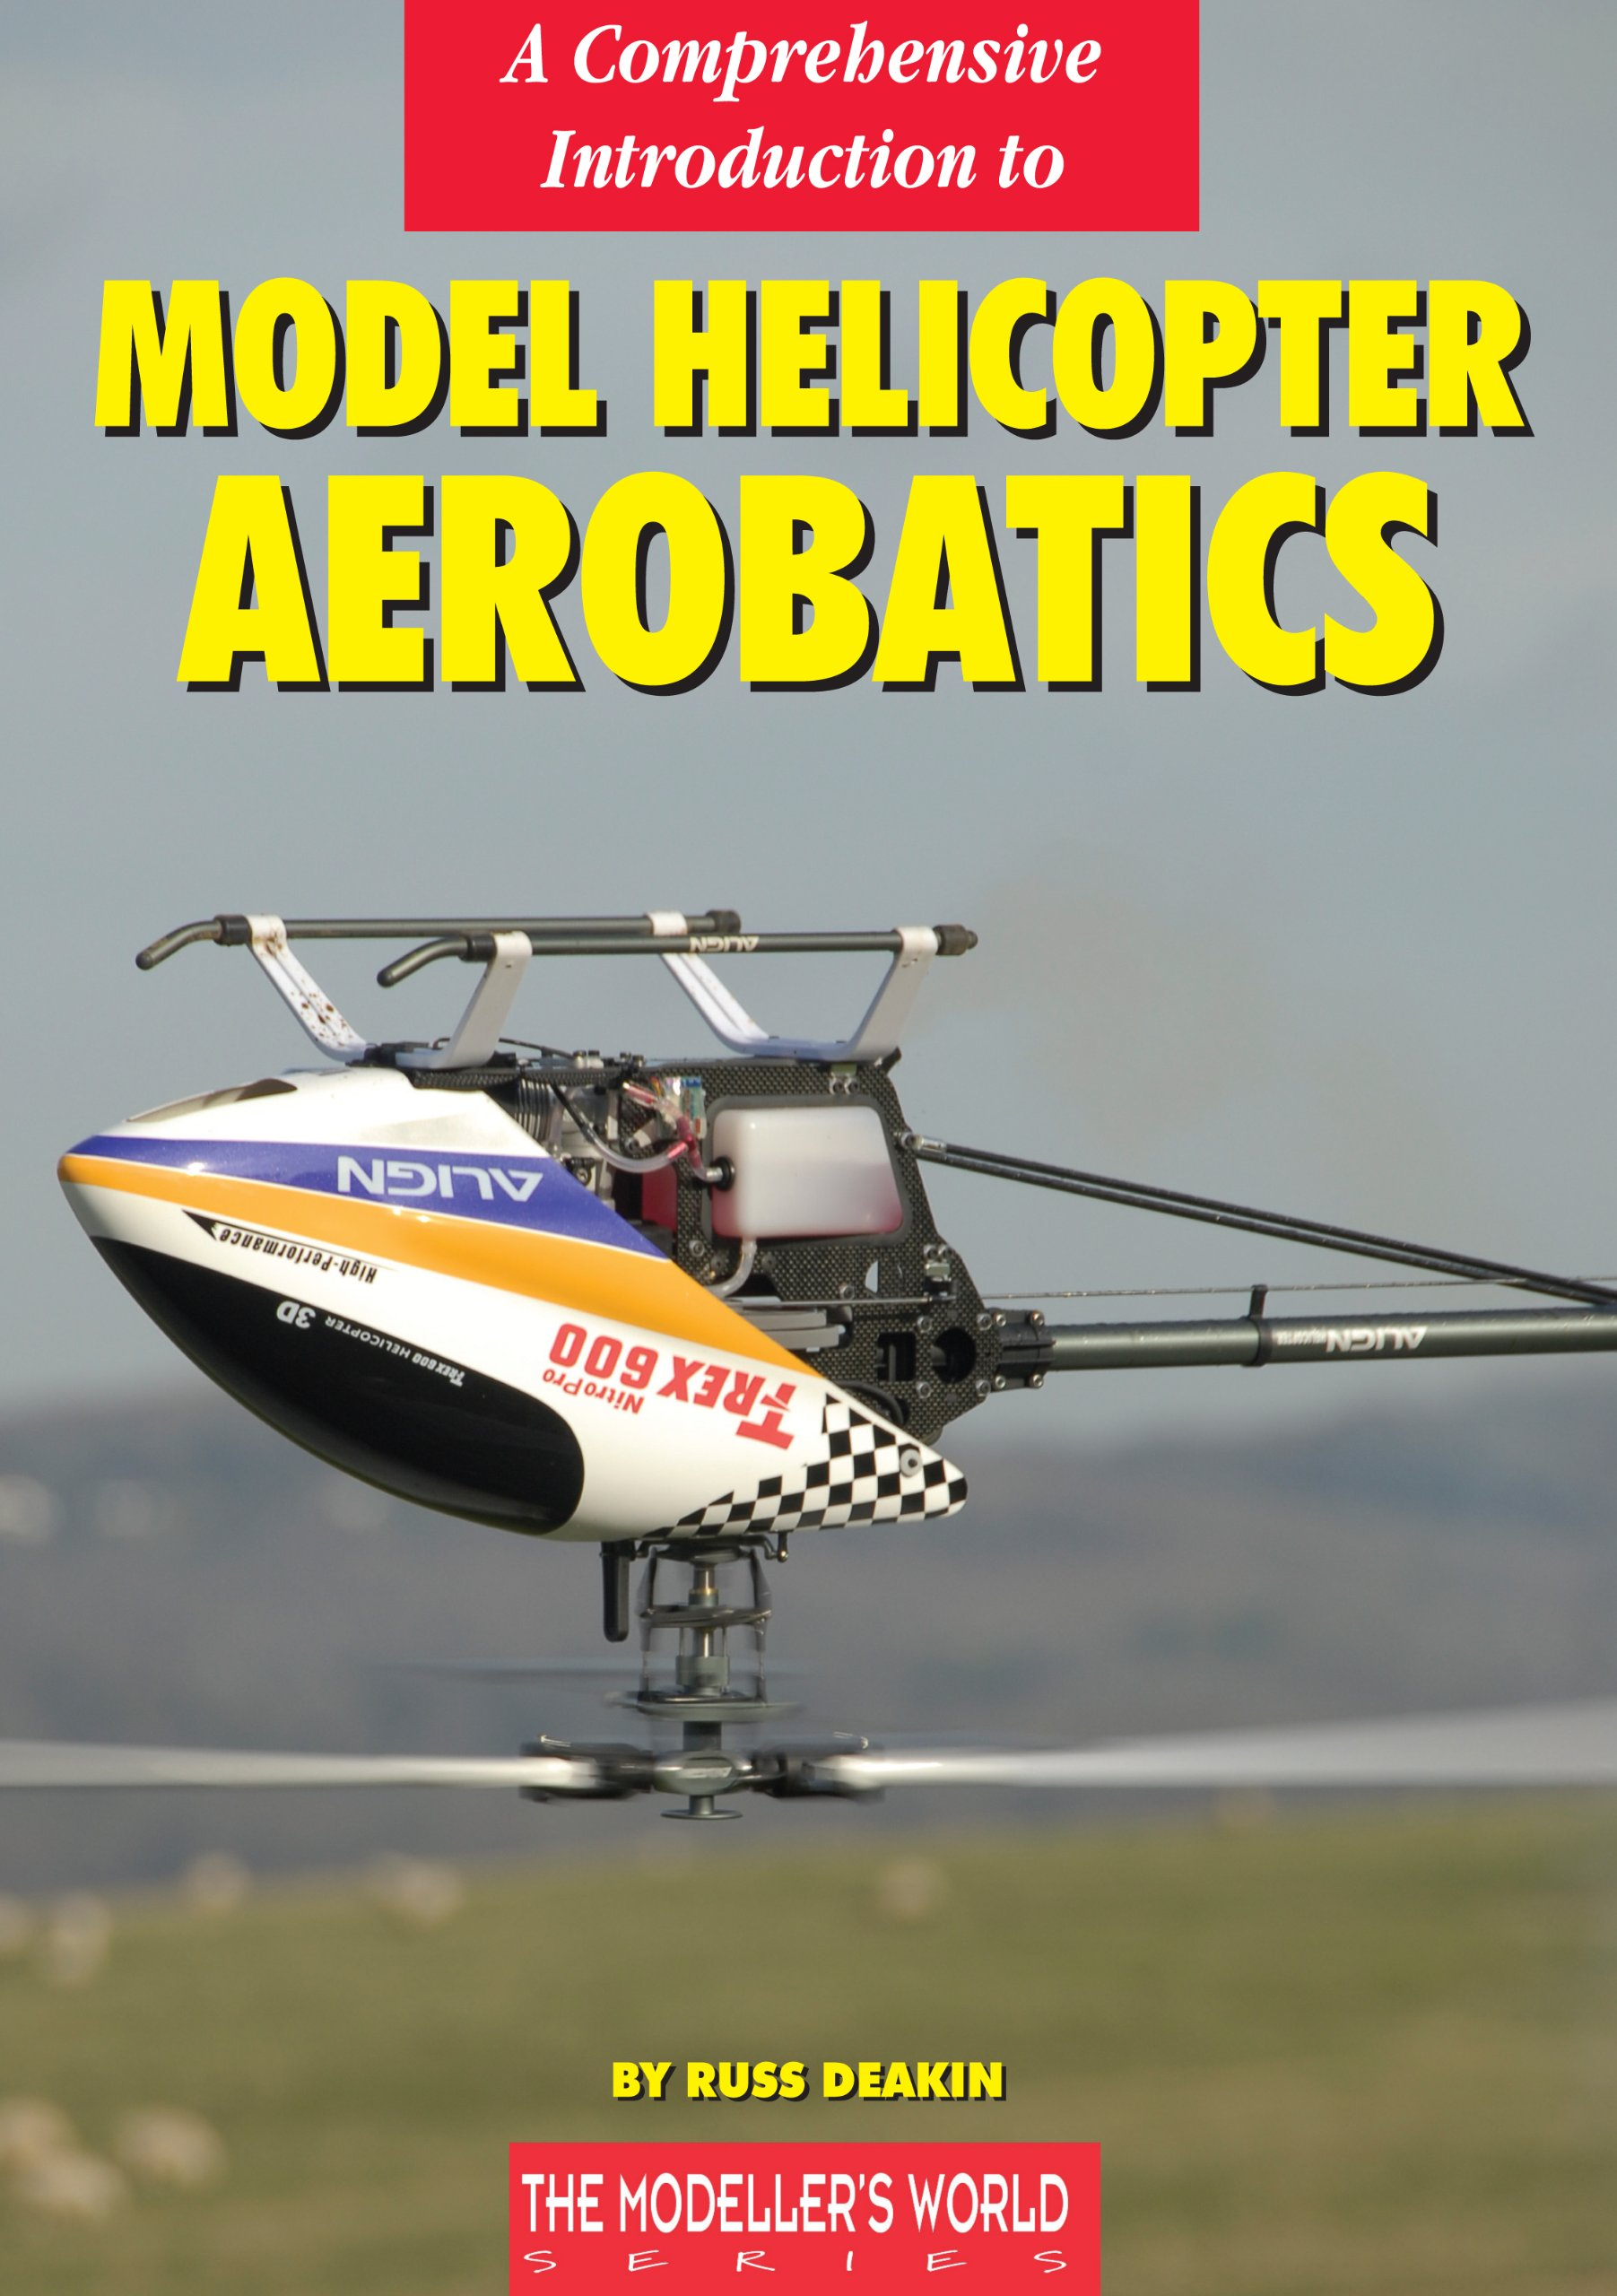 Image OfA Comprehensive Introduction To Model Helicopter Aerobatics (The Modelers World Series) (English Edition)